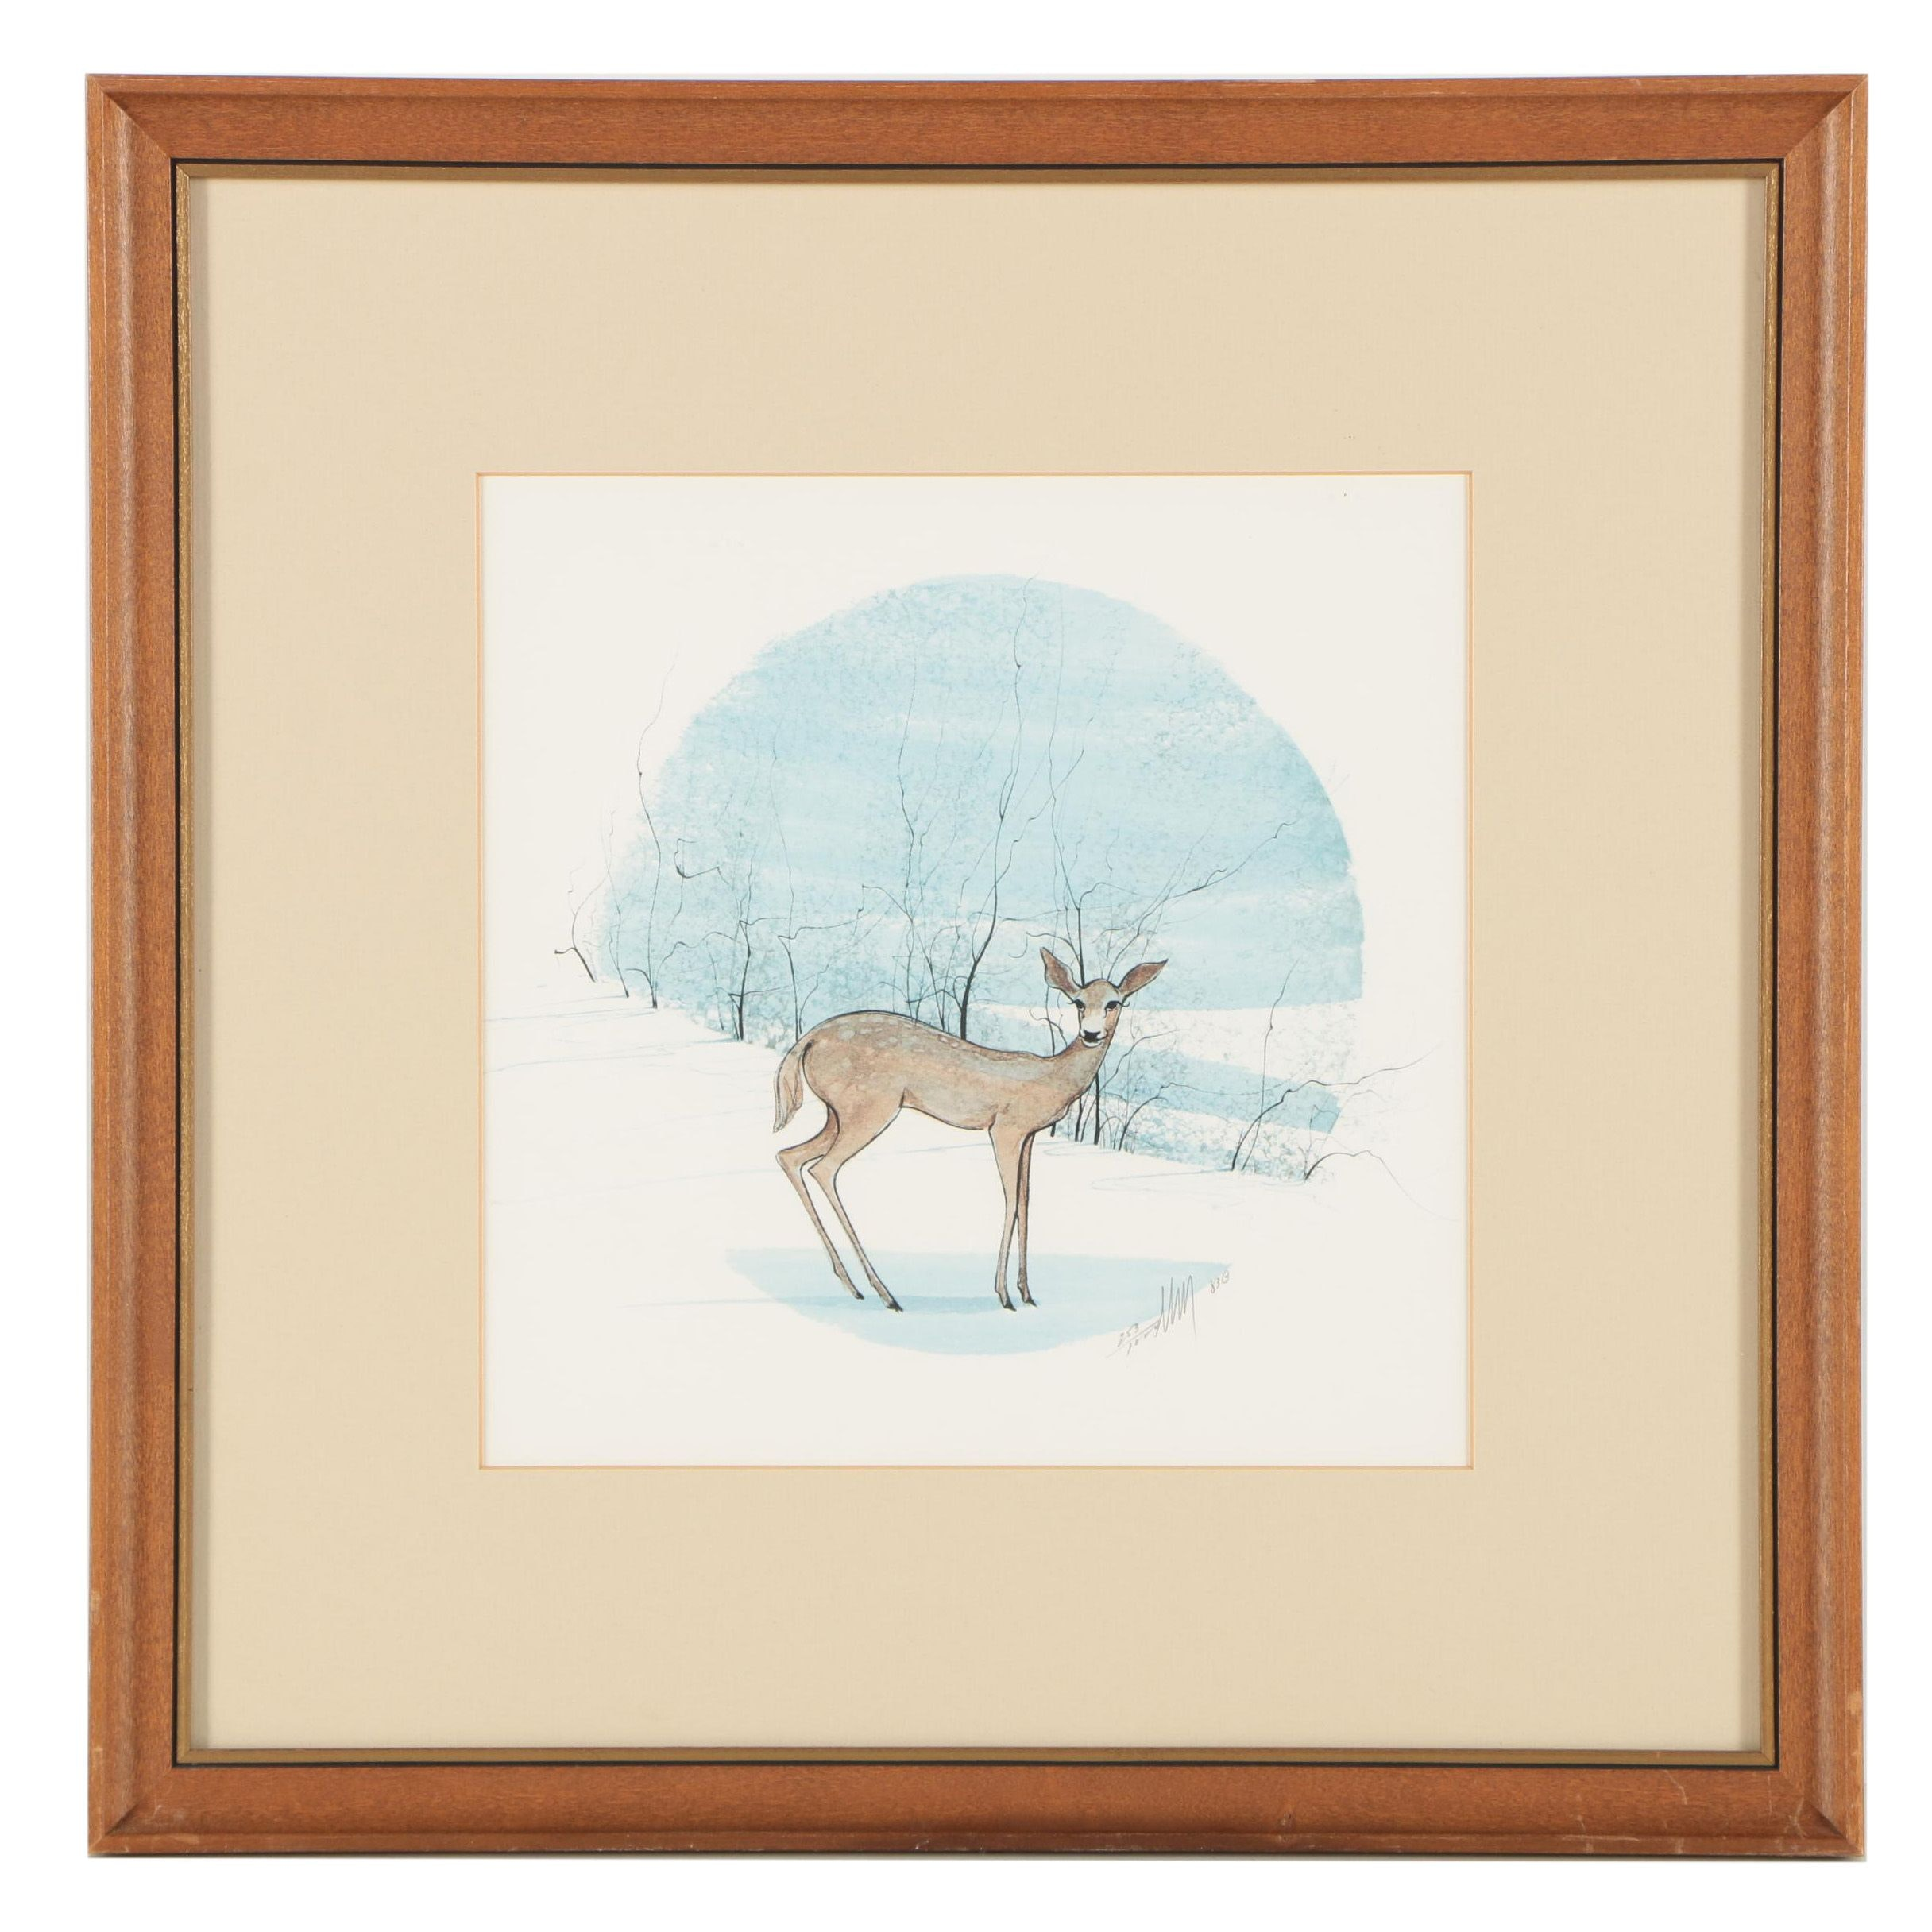 P Buckley Moss Limited Edition Offset Lithograph of a Deer